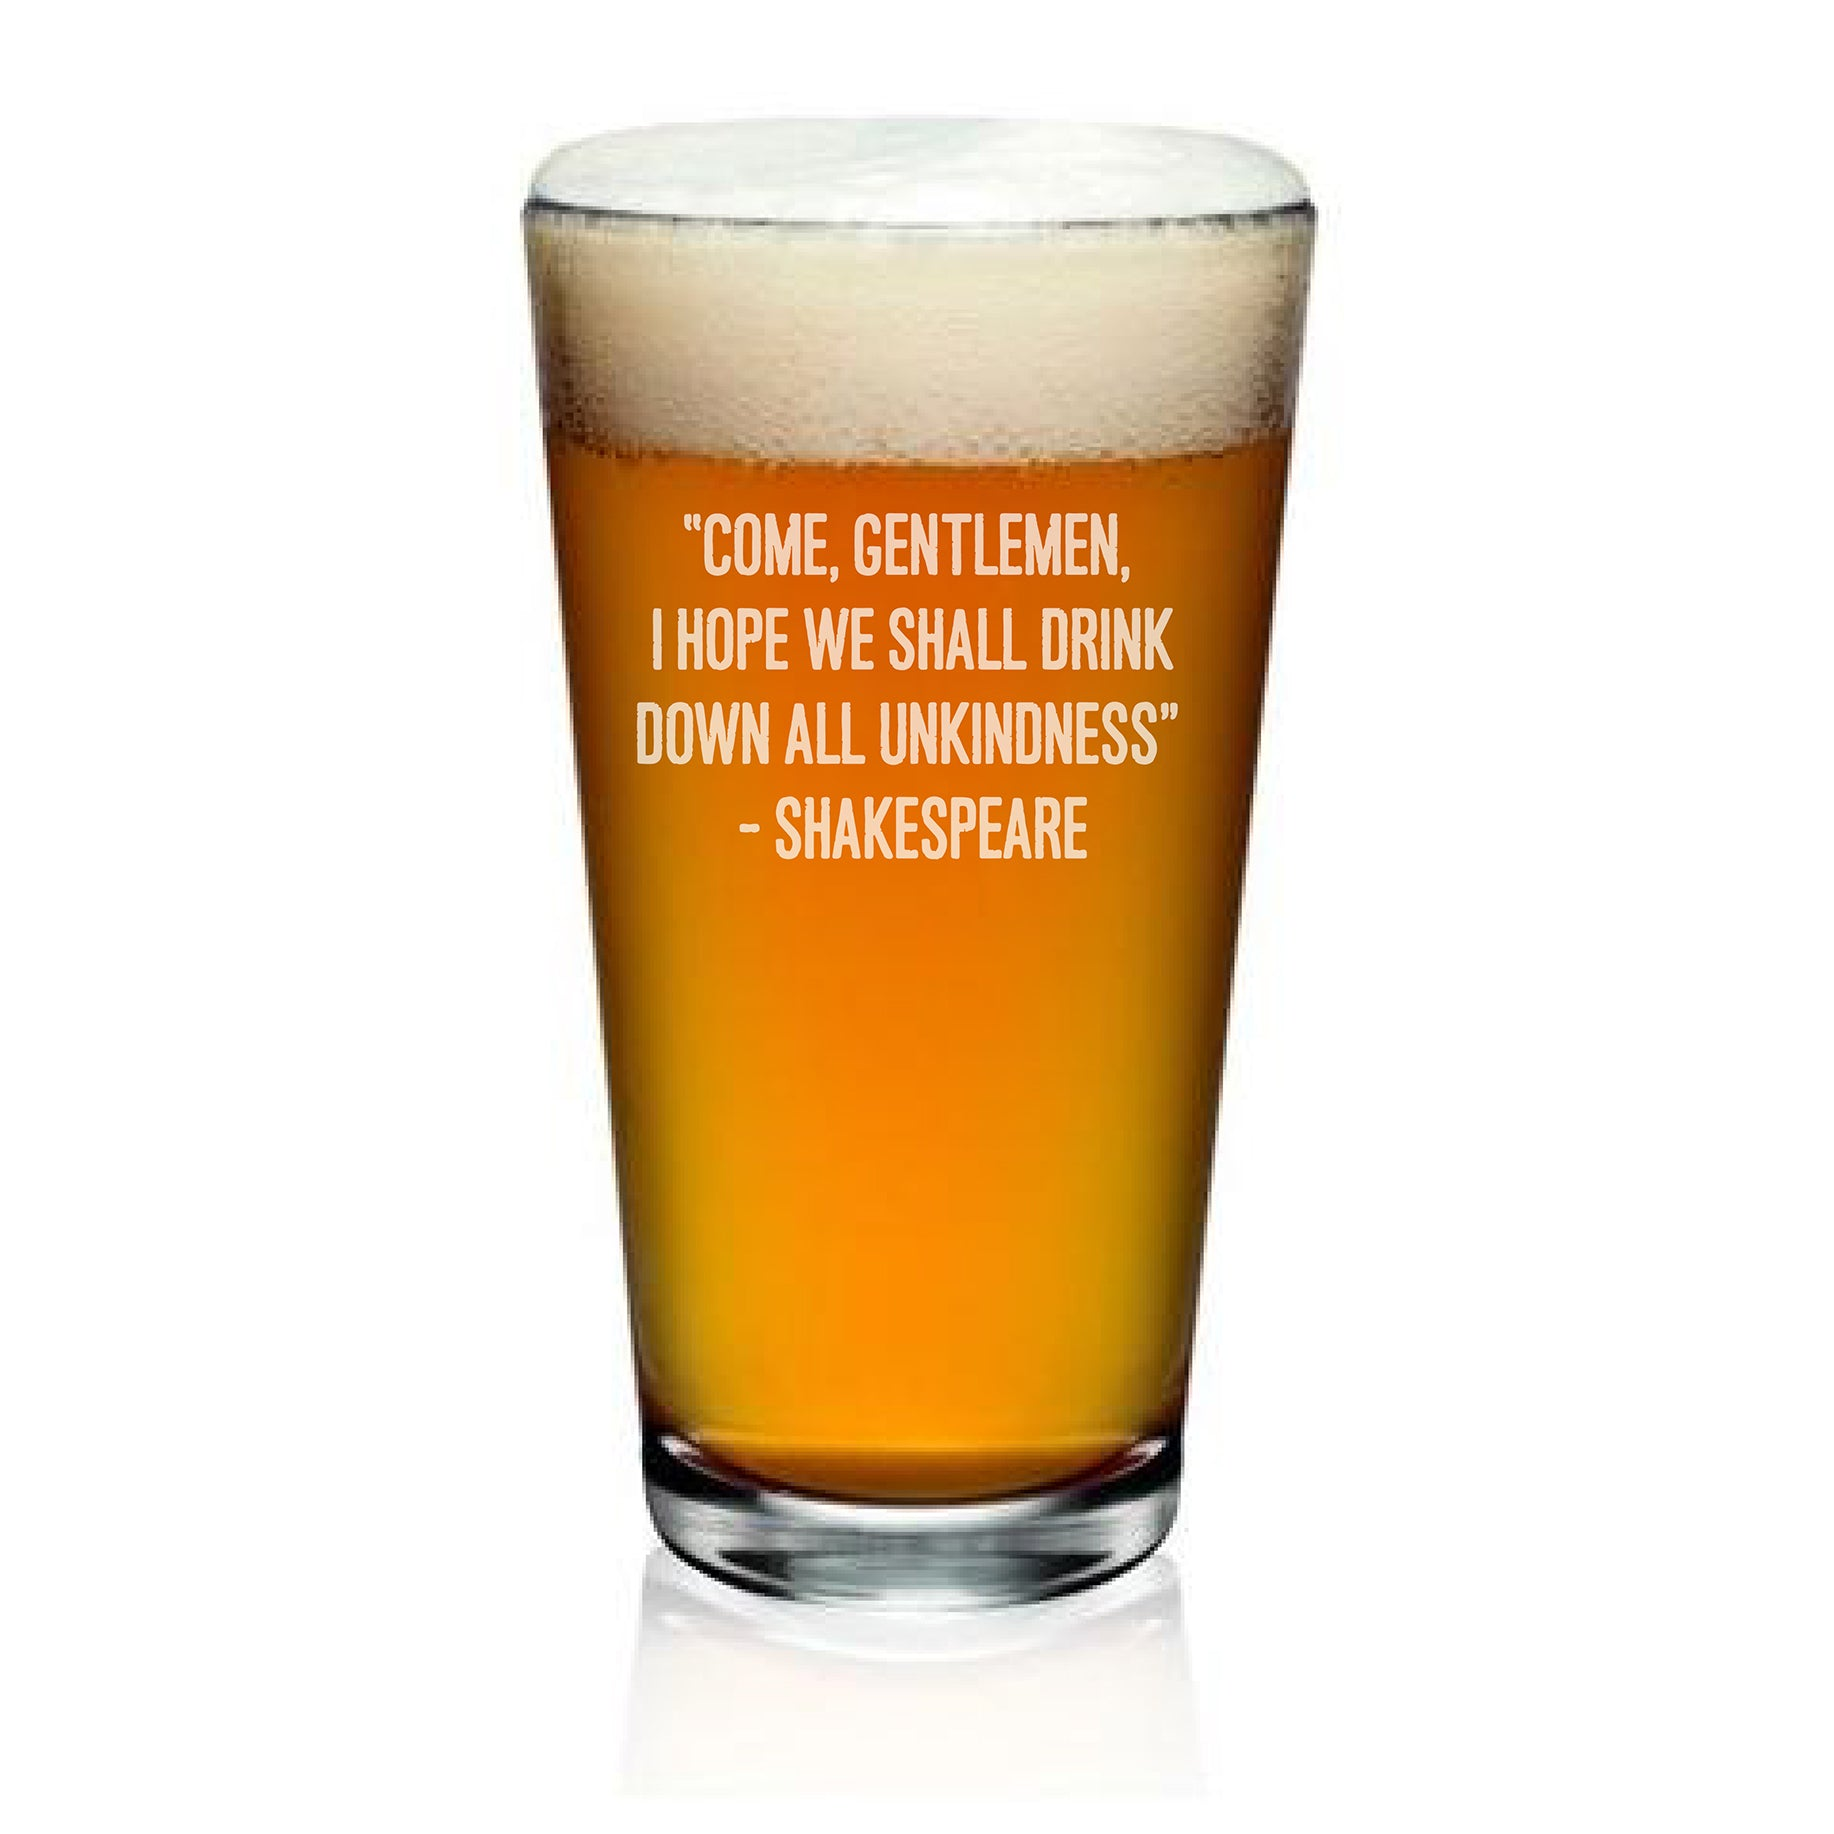 Pint Glass With Shakespeare quote from Othello